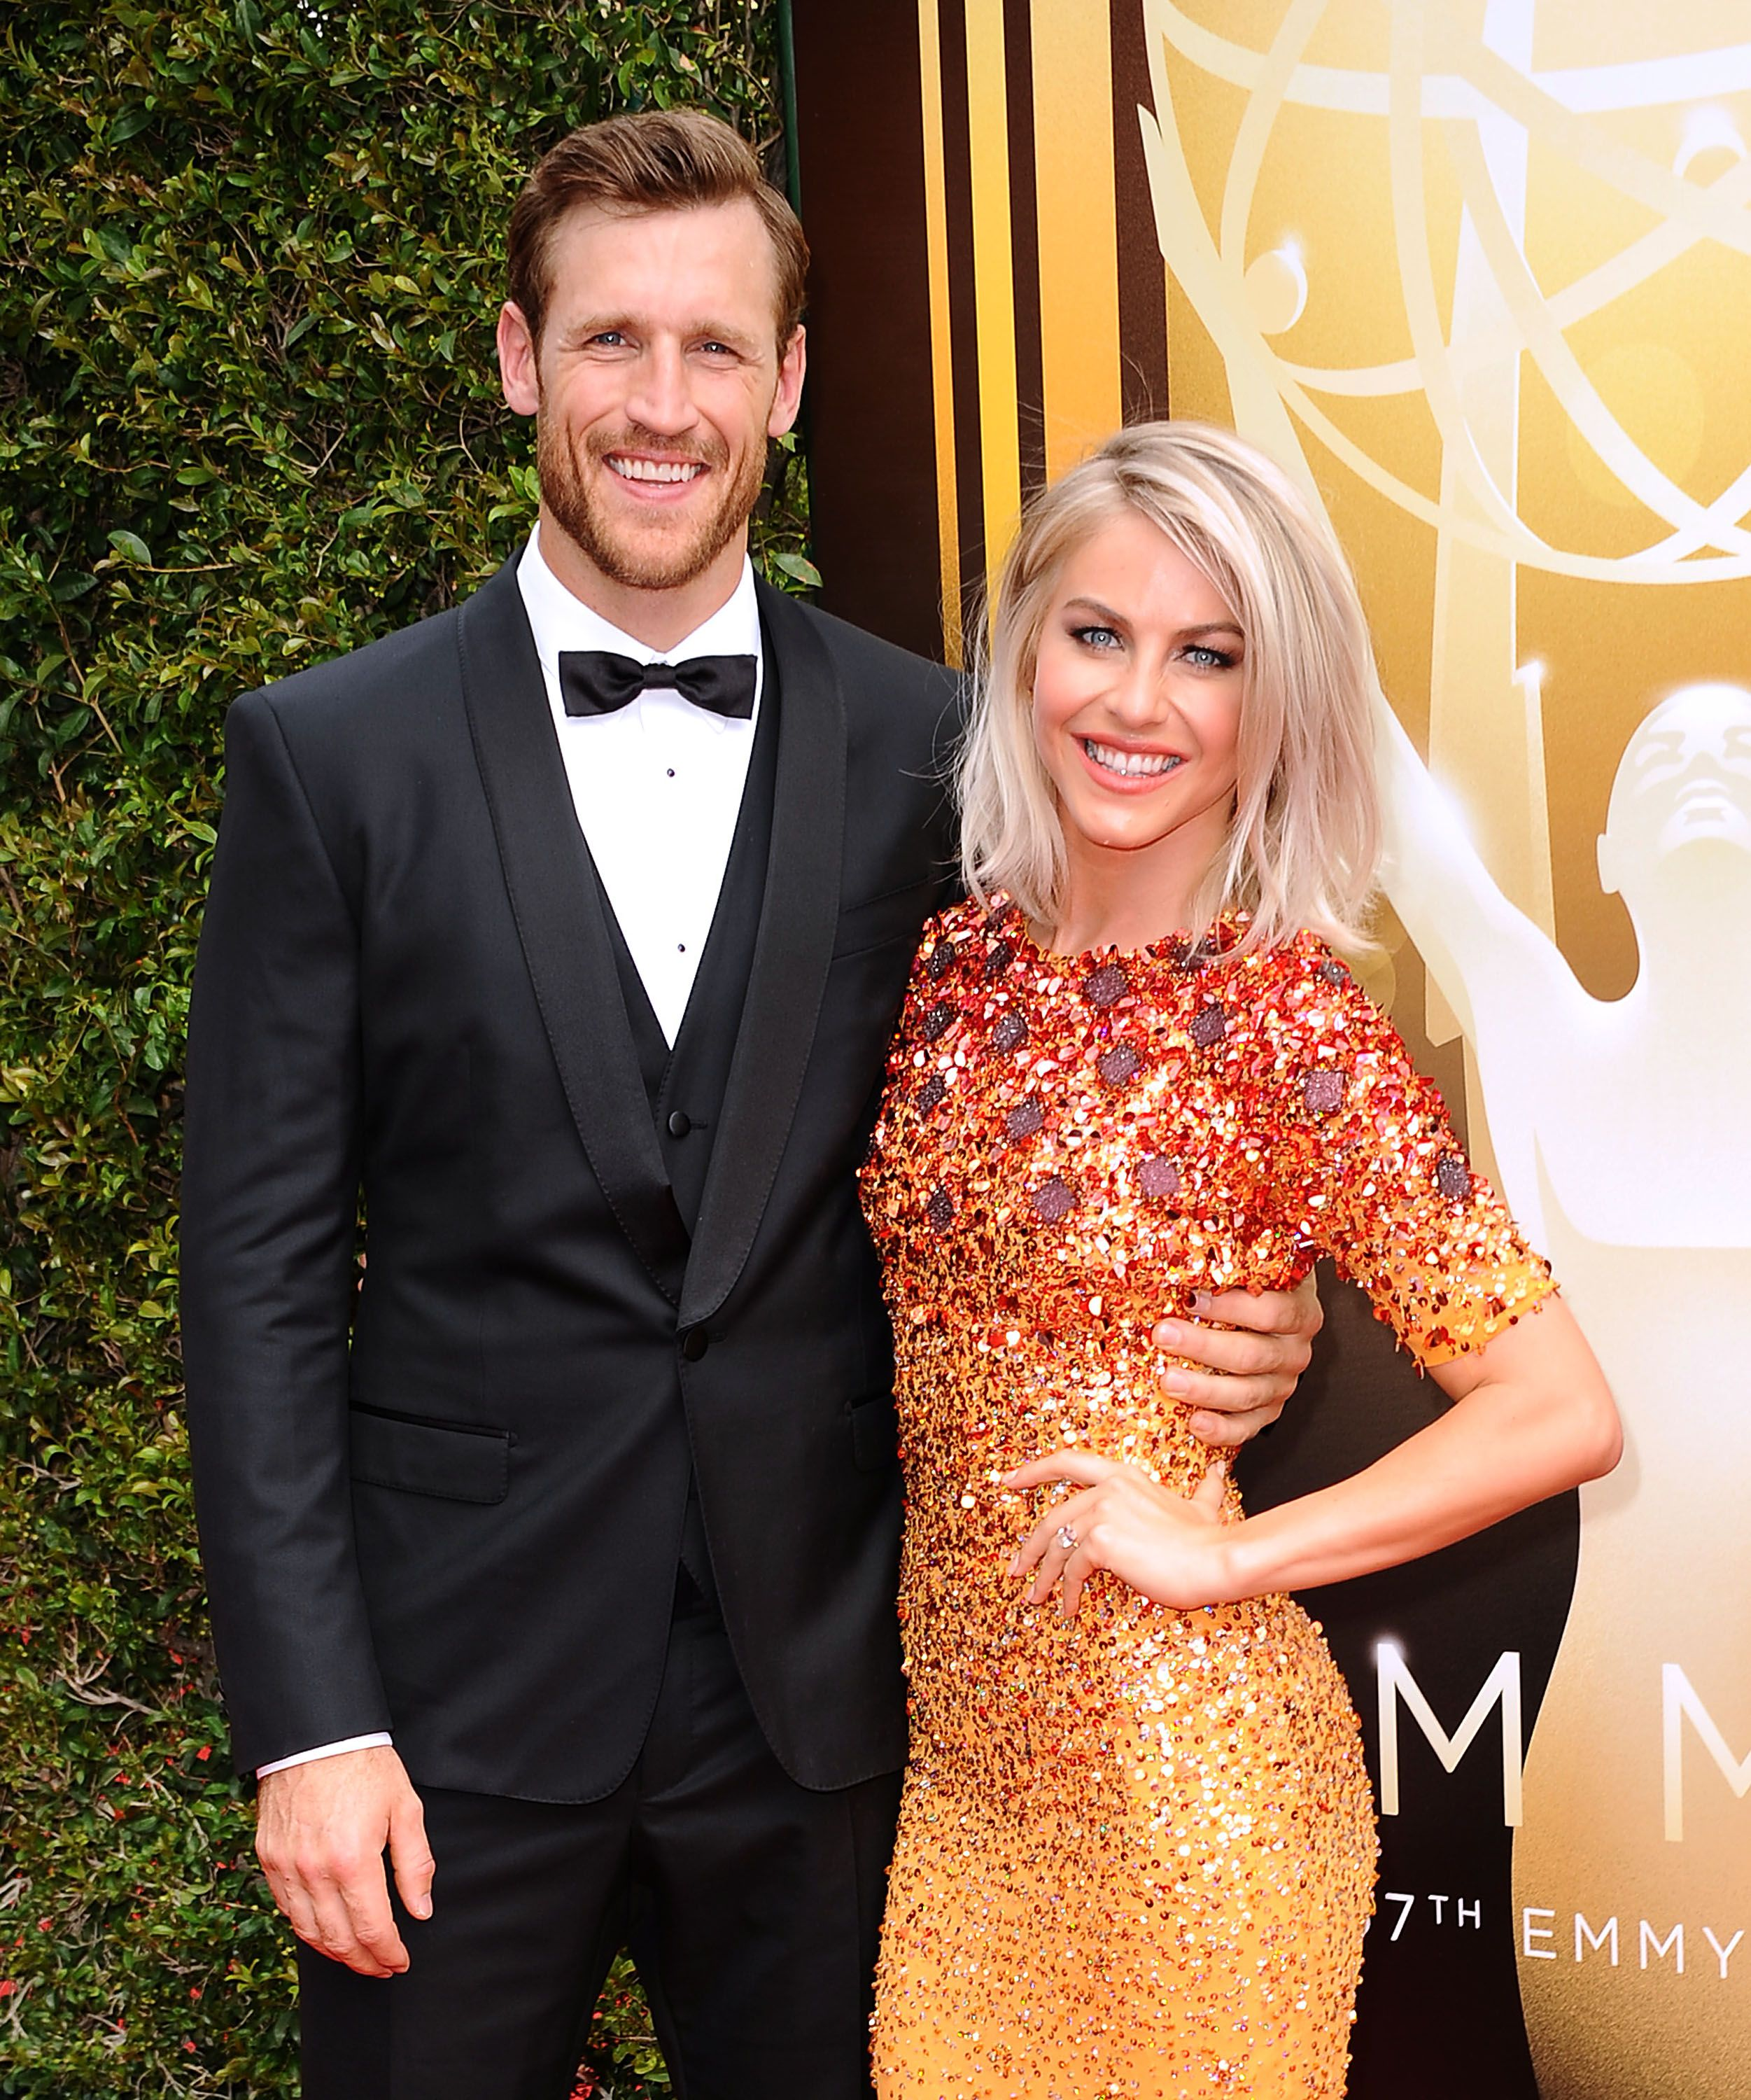 Brooks Laich and Julianne Hough atthe Creative Arts Emmy Awards at Microsoft Theater on September 12, 2015, in Los Angeles, California | Photo:Jason LaVeris/FilmMagic/Getty Images